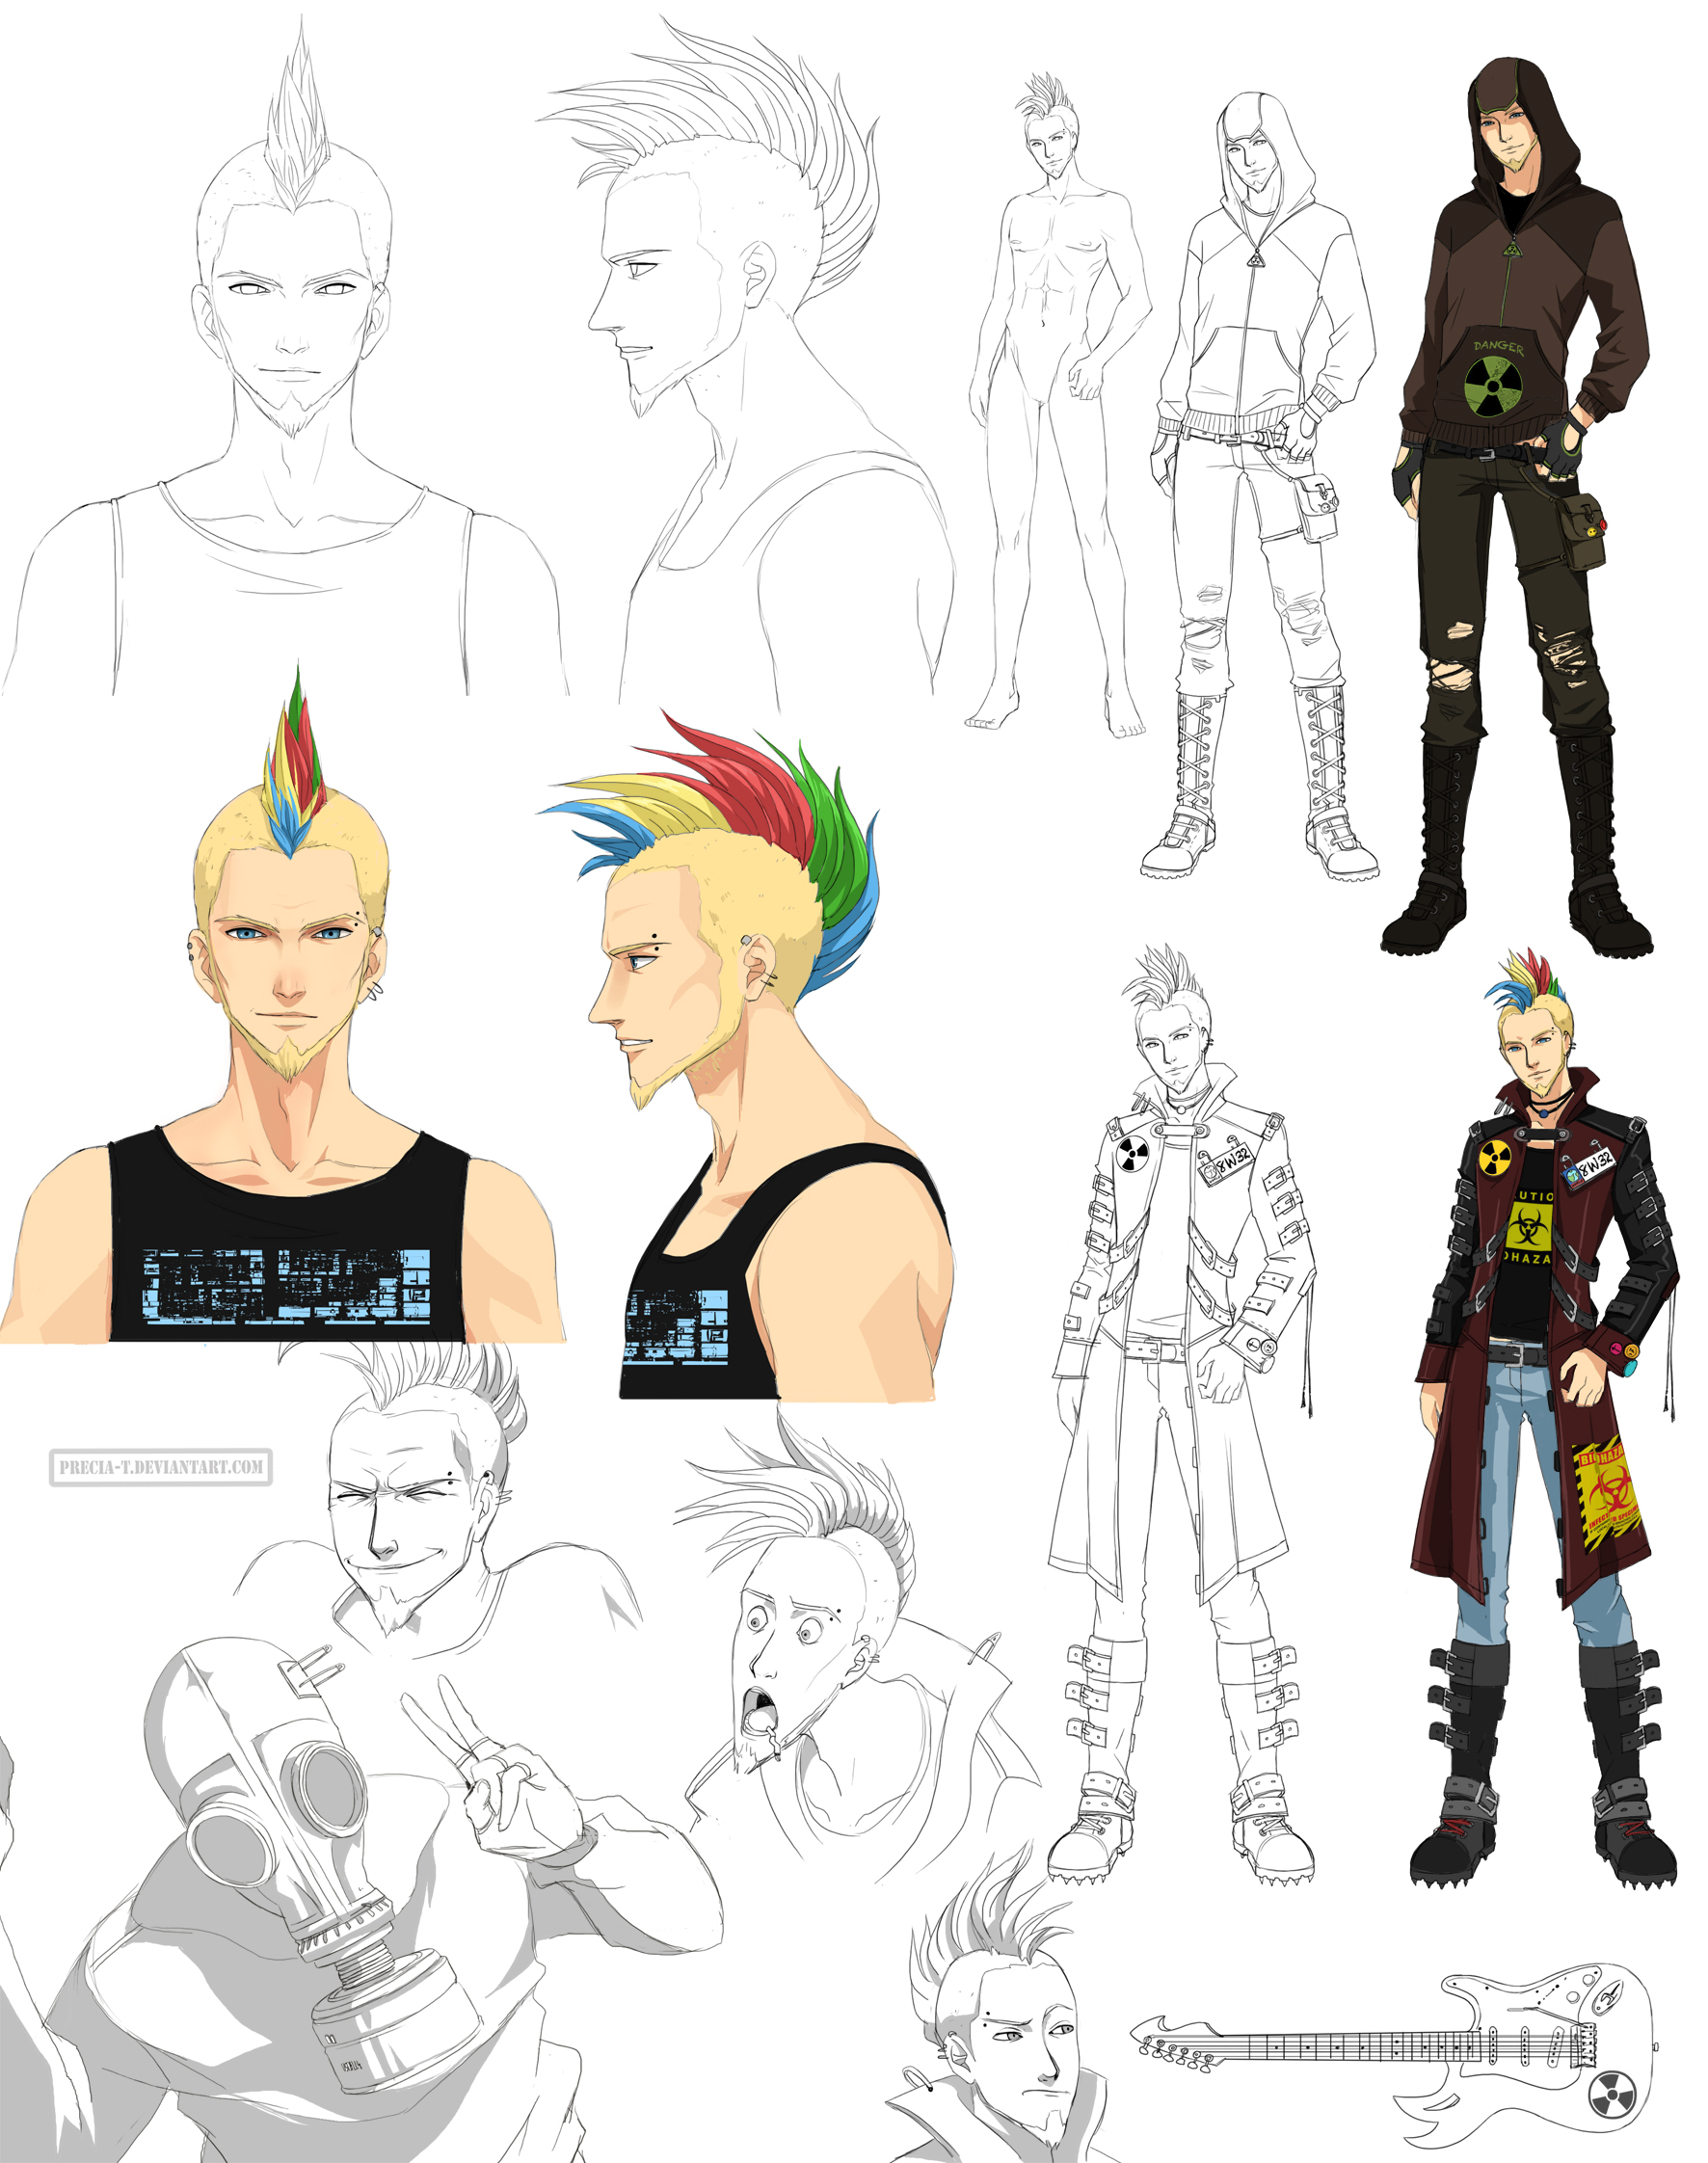 Punk guy design - Rad (Commission) by Precia-T